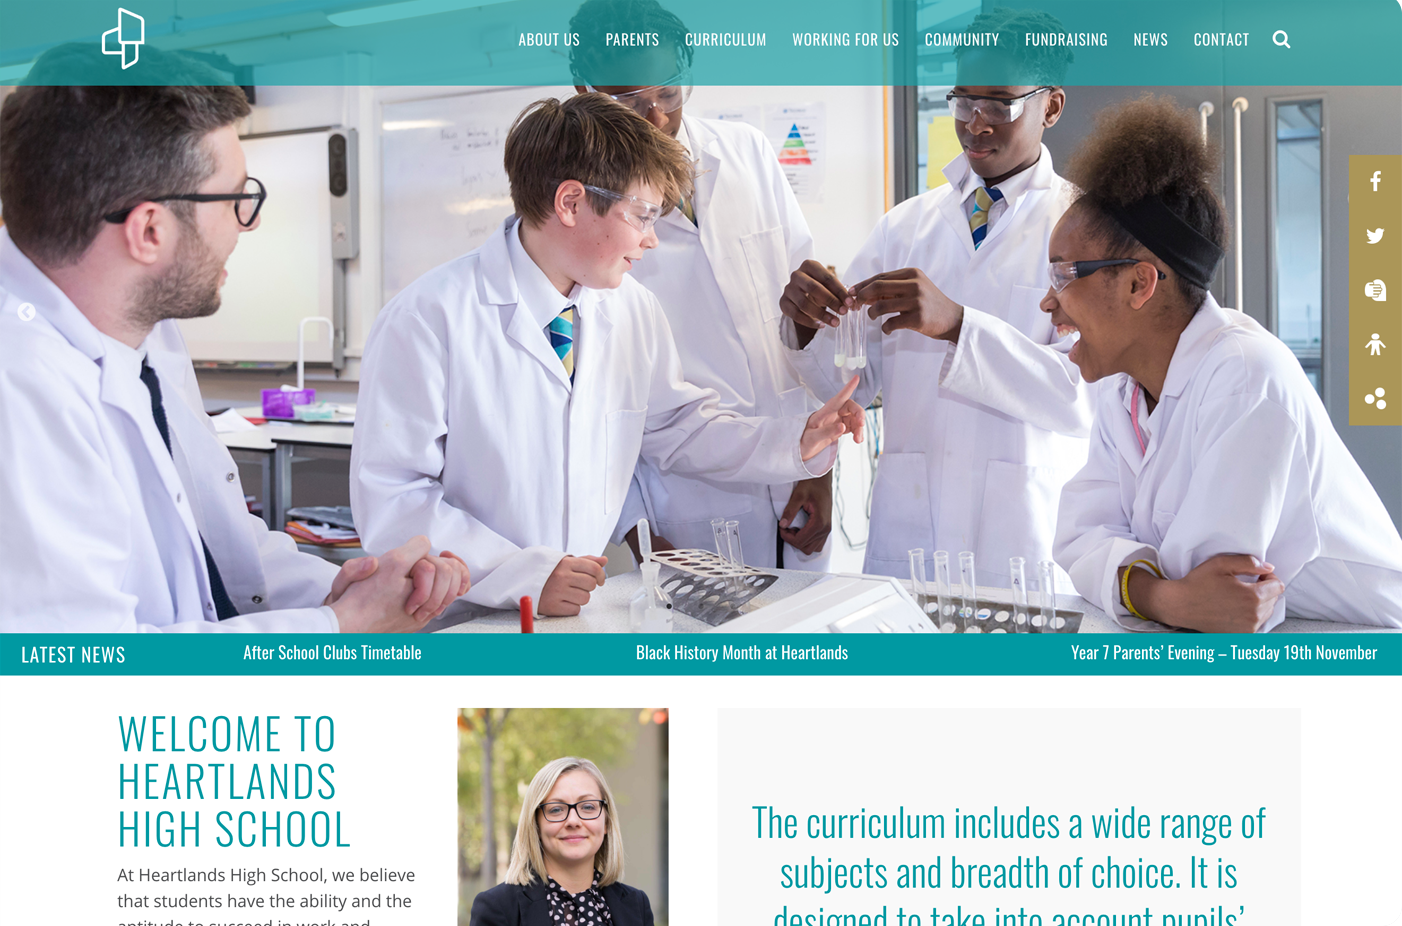 A screenshot of one of our clients websites, heartlands high